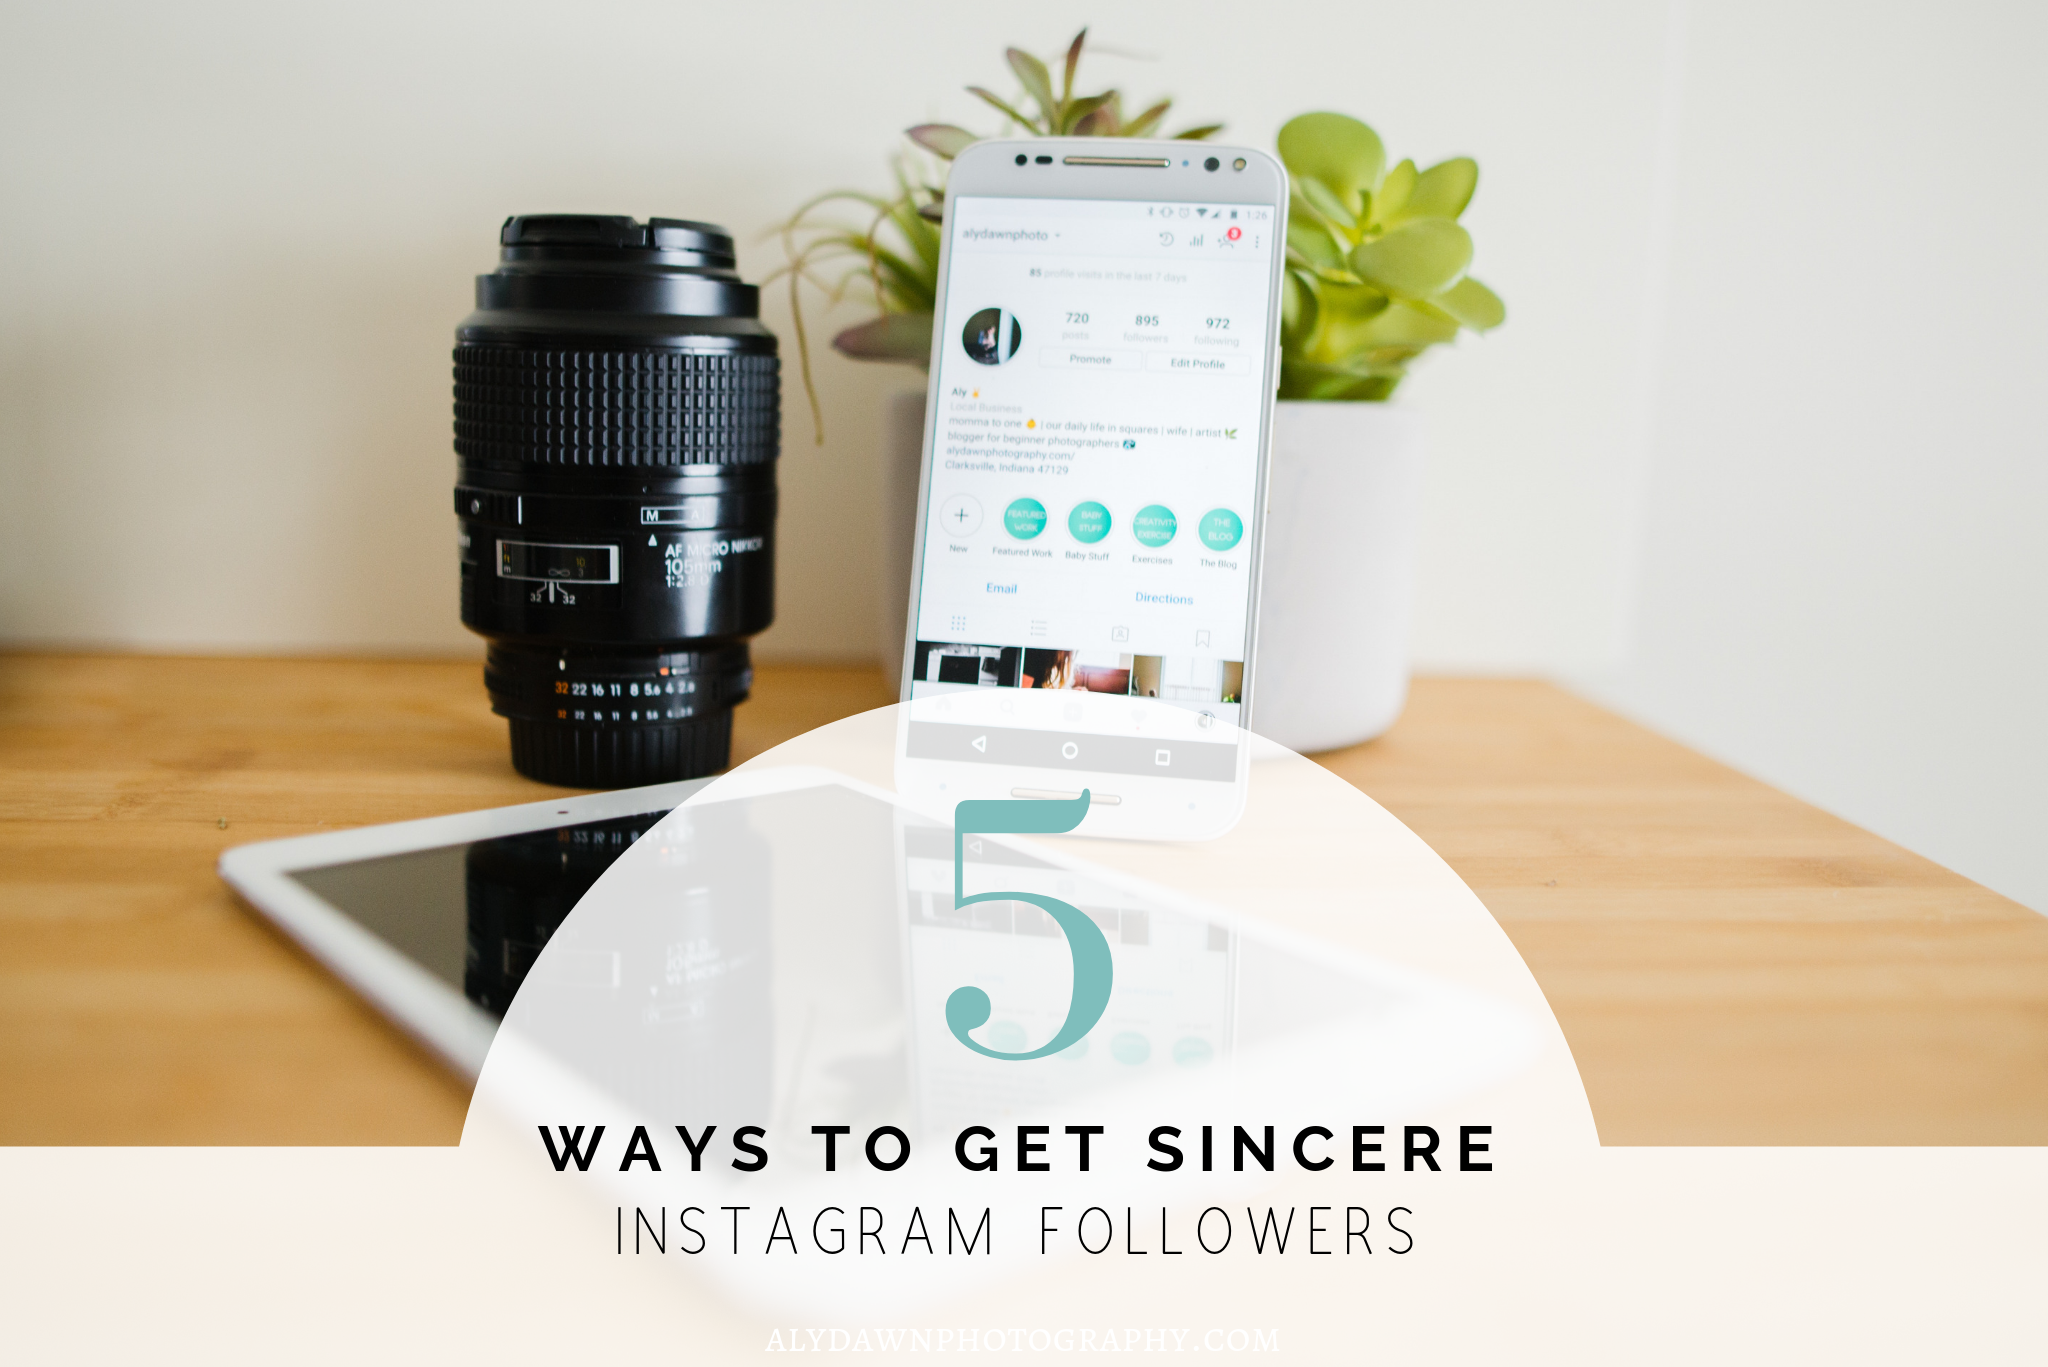 5 Ways to Get Sincere Followers on Instagram